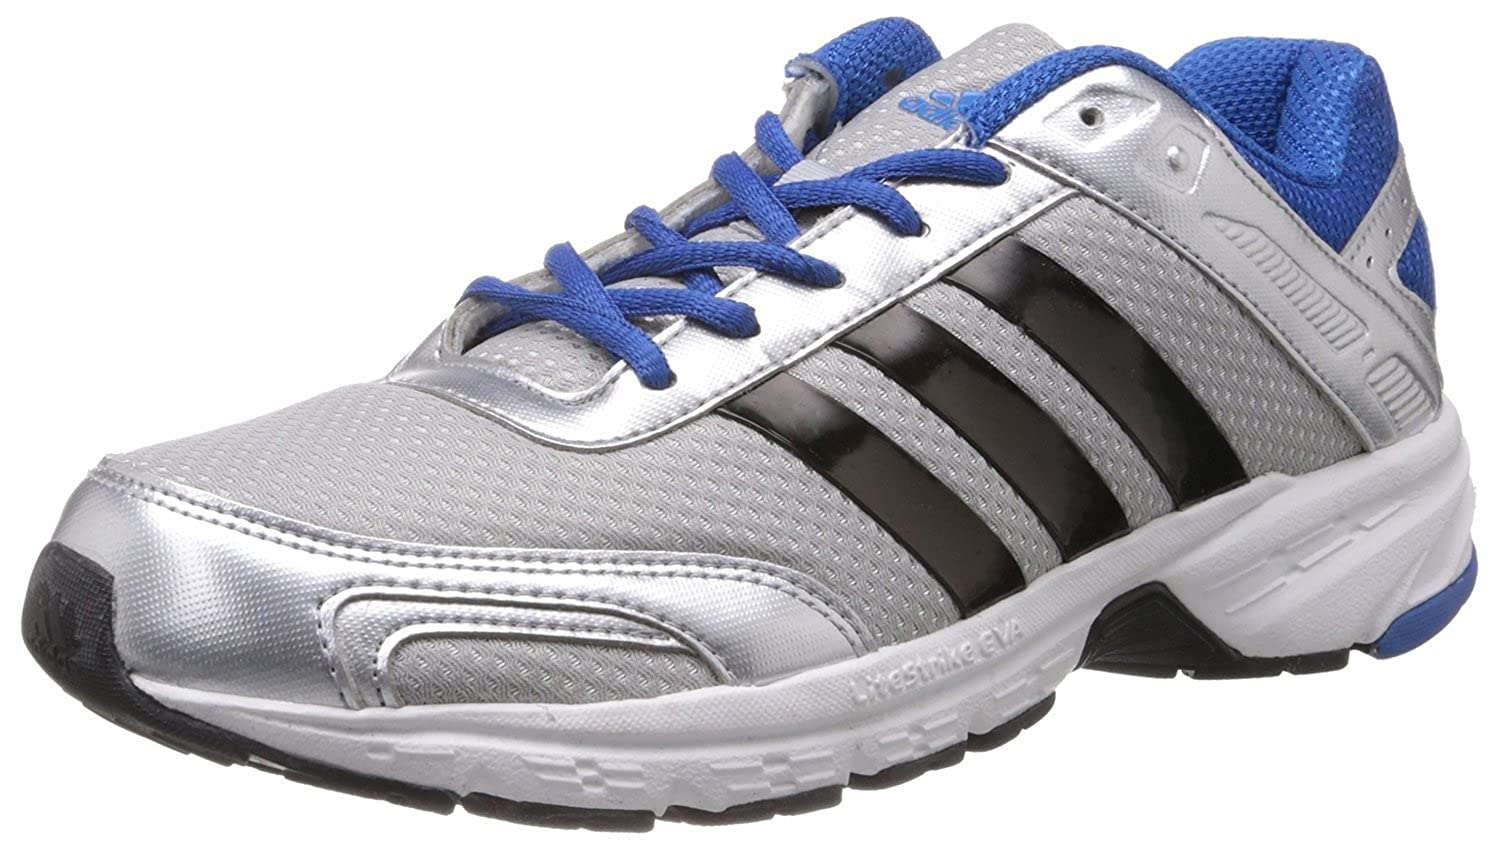 adidas 2014 running shoes Online